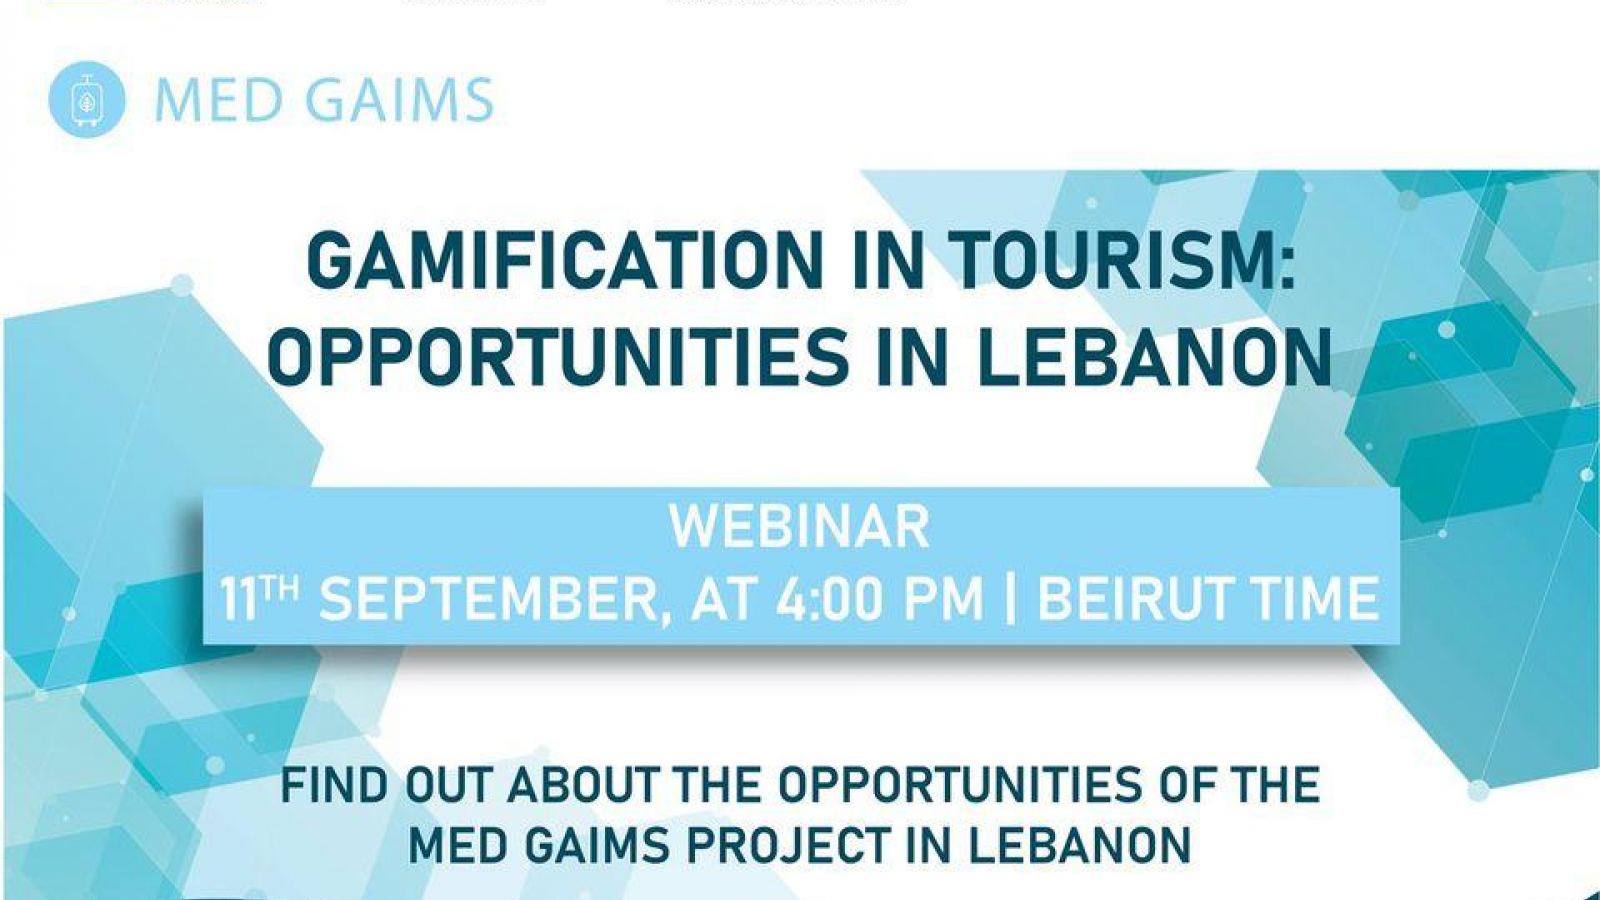 EU-funded MED GAIMS: webinar on grant opportunities to gamify tourism in Lebanon